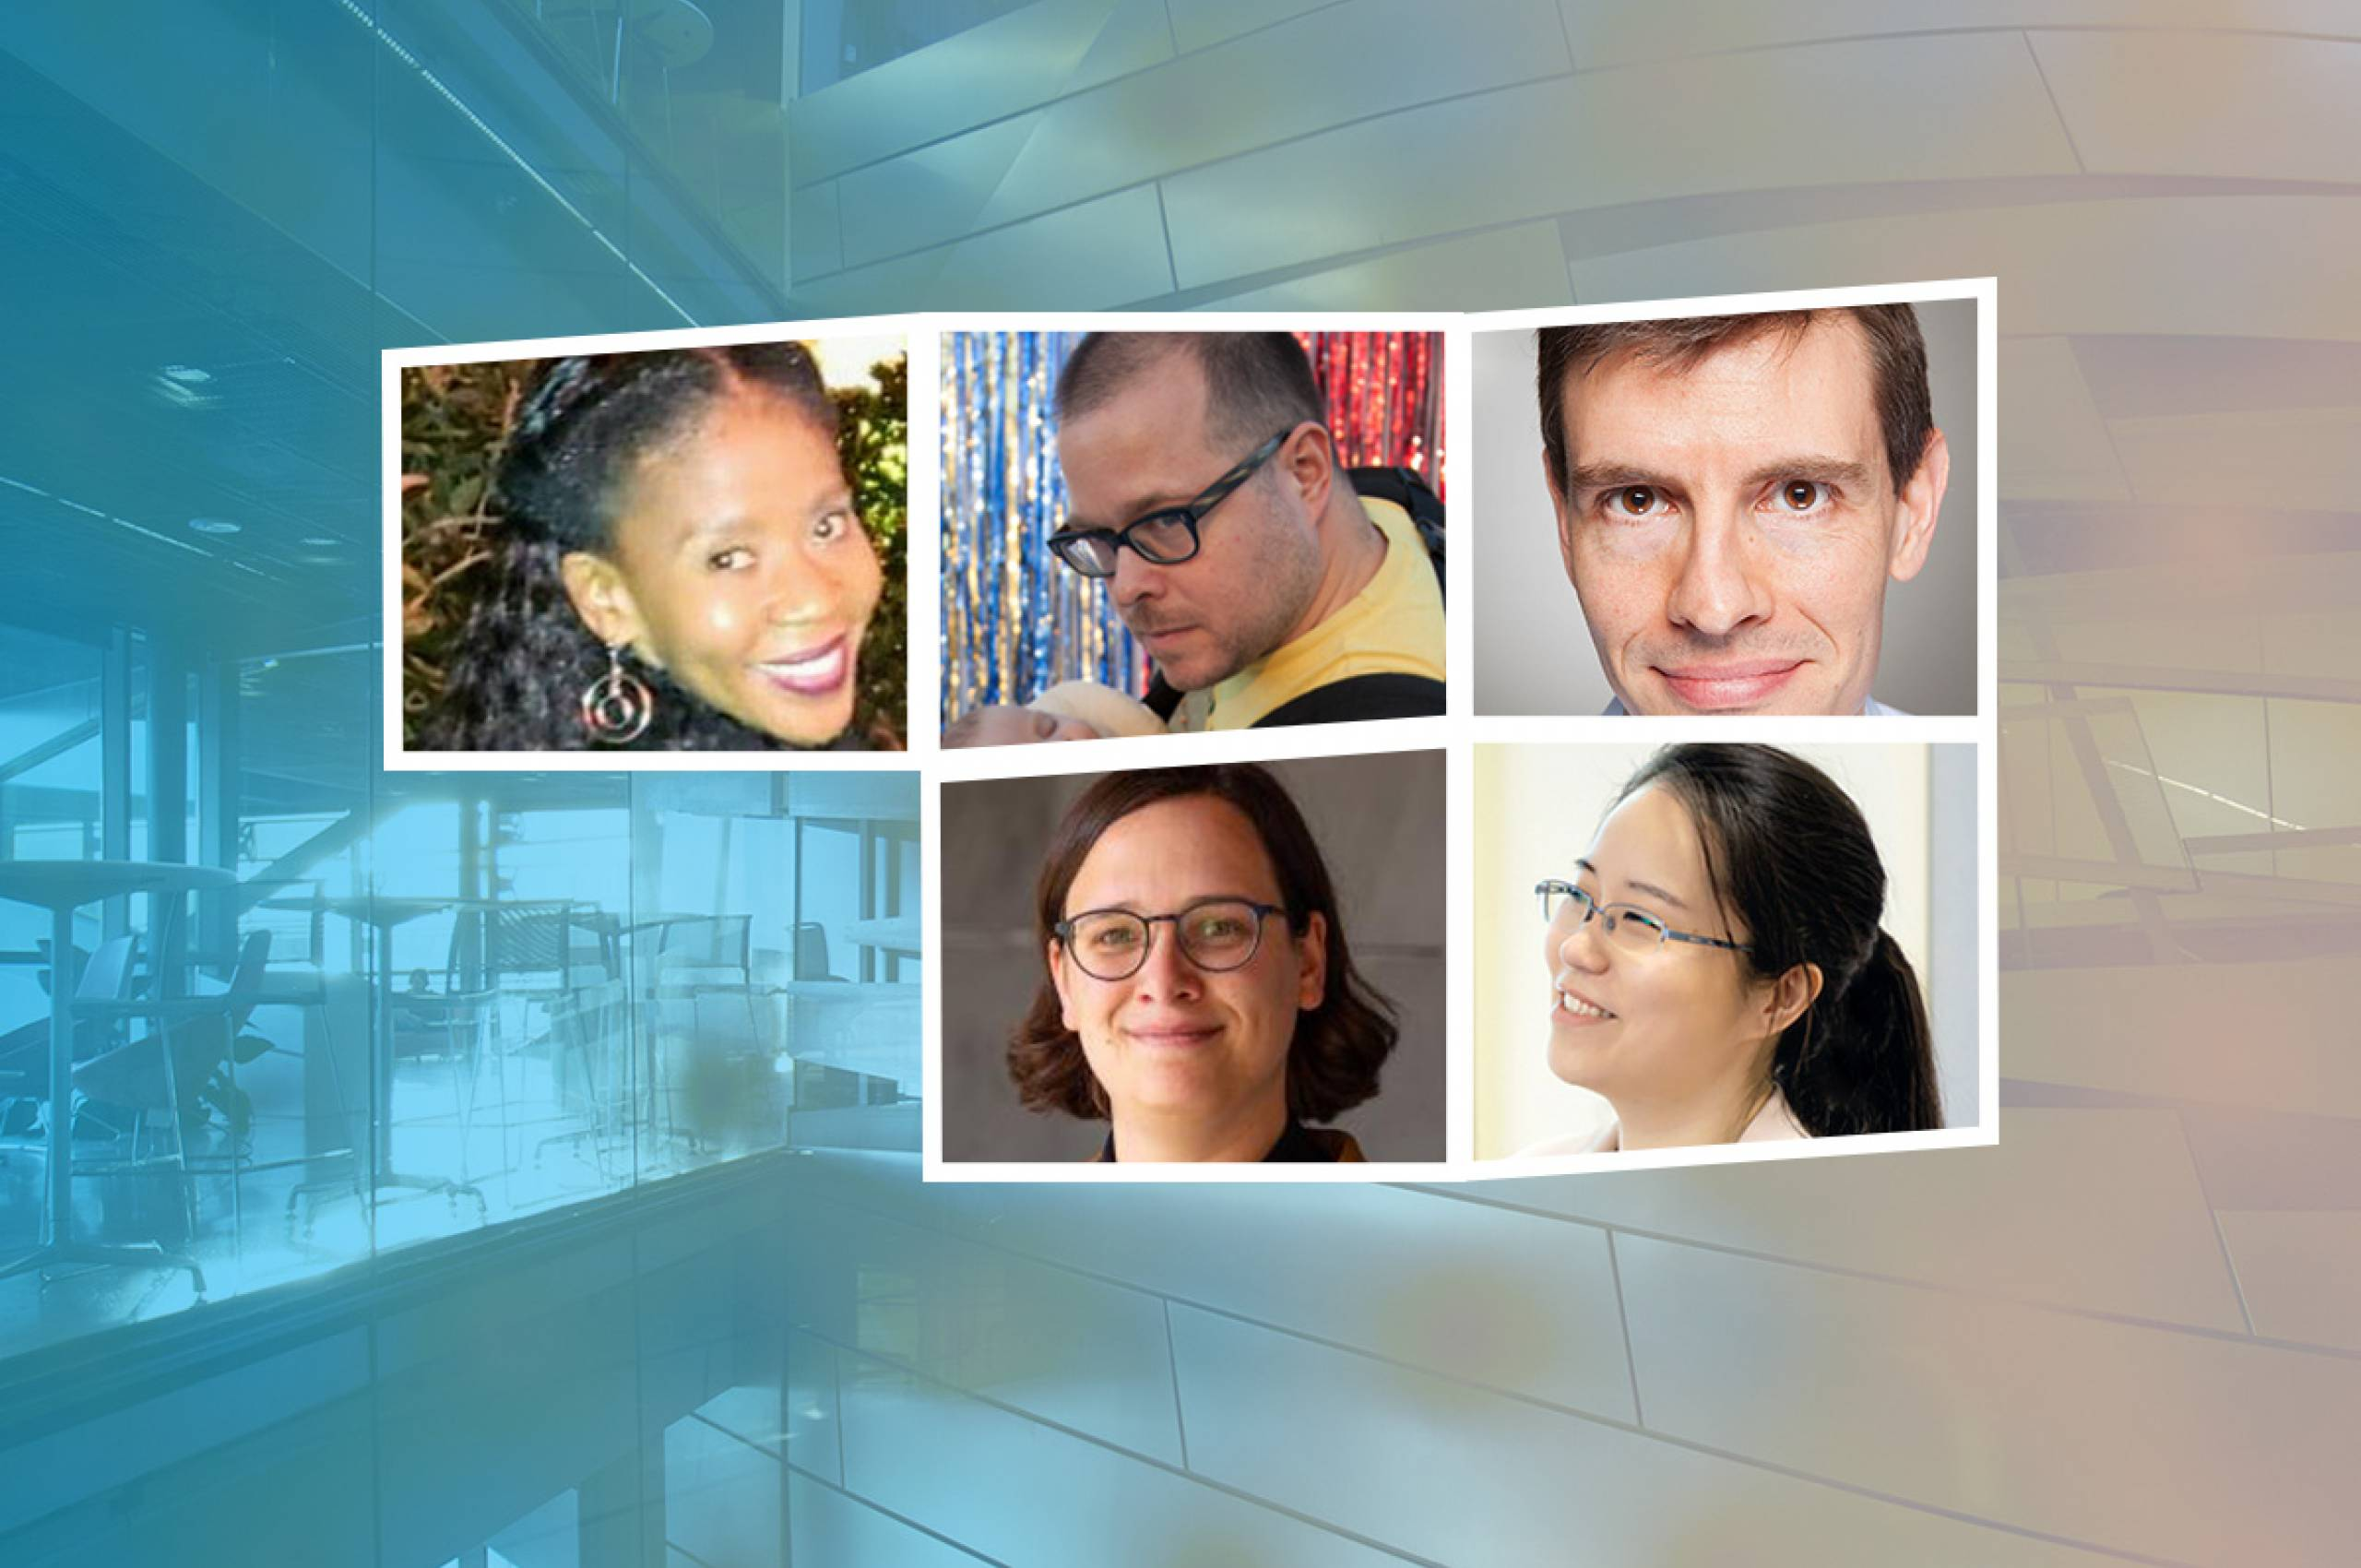 Sharlane Cleare, Chris Csíkszentmihályi, Matthew Wilkens, and Qian Yang will begin their lecturer and professorships in Information Science this fall, while Gili Vidan will arrive in July 2021.